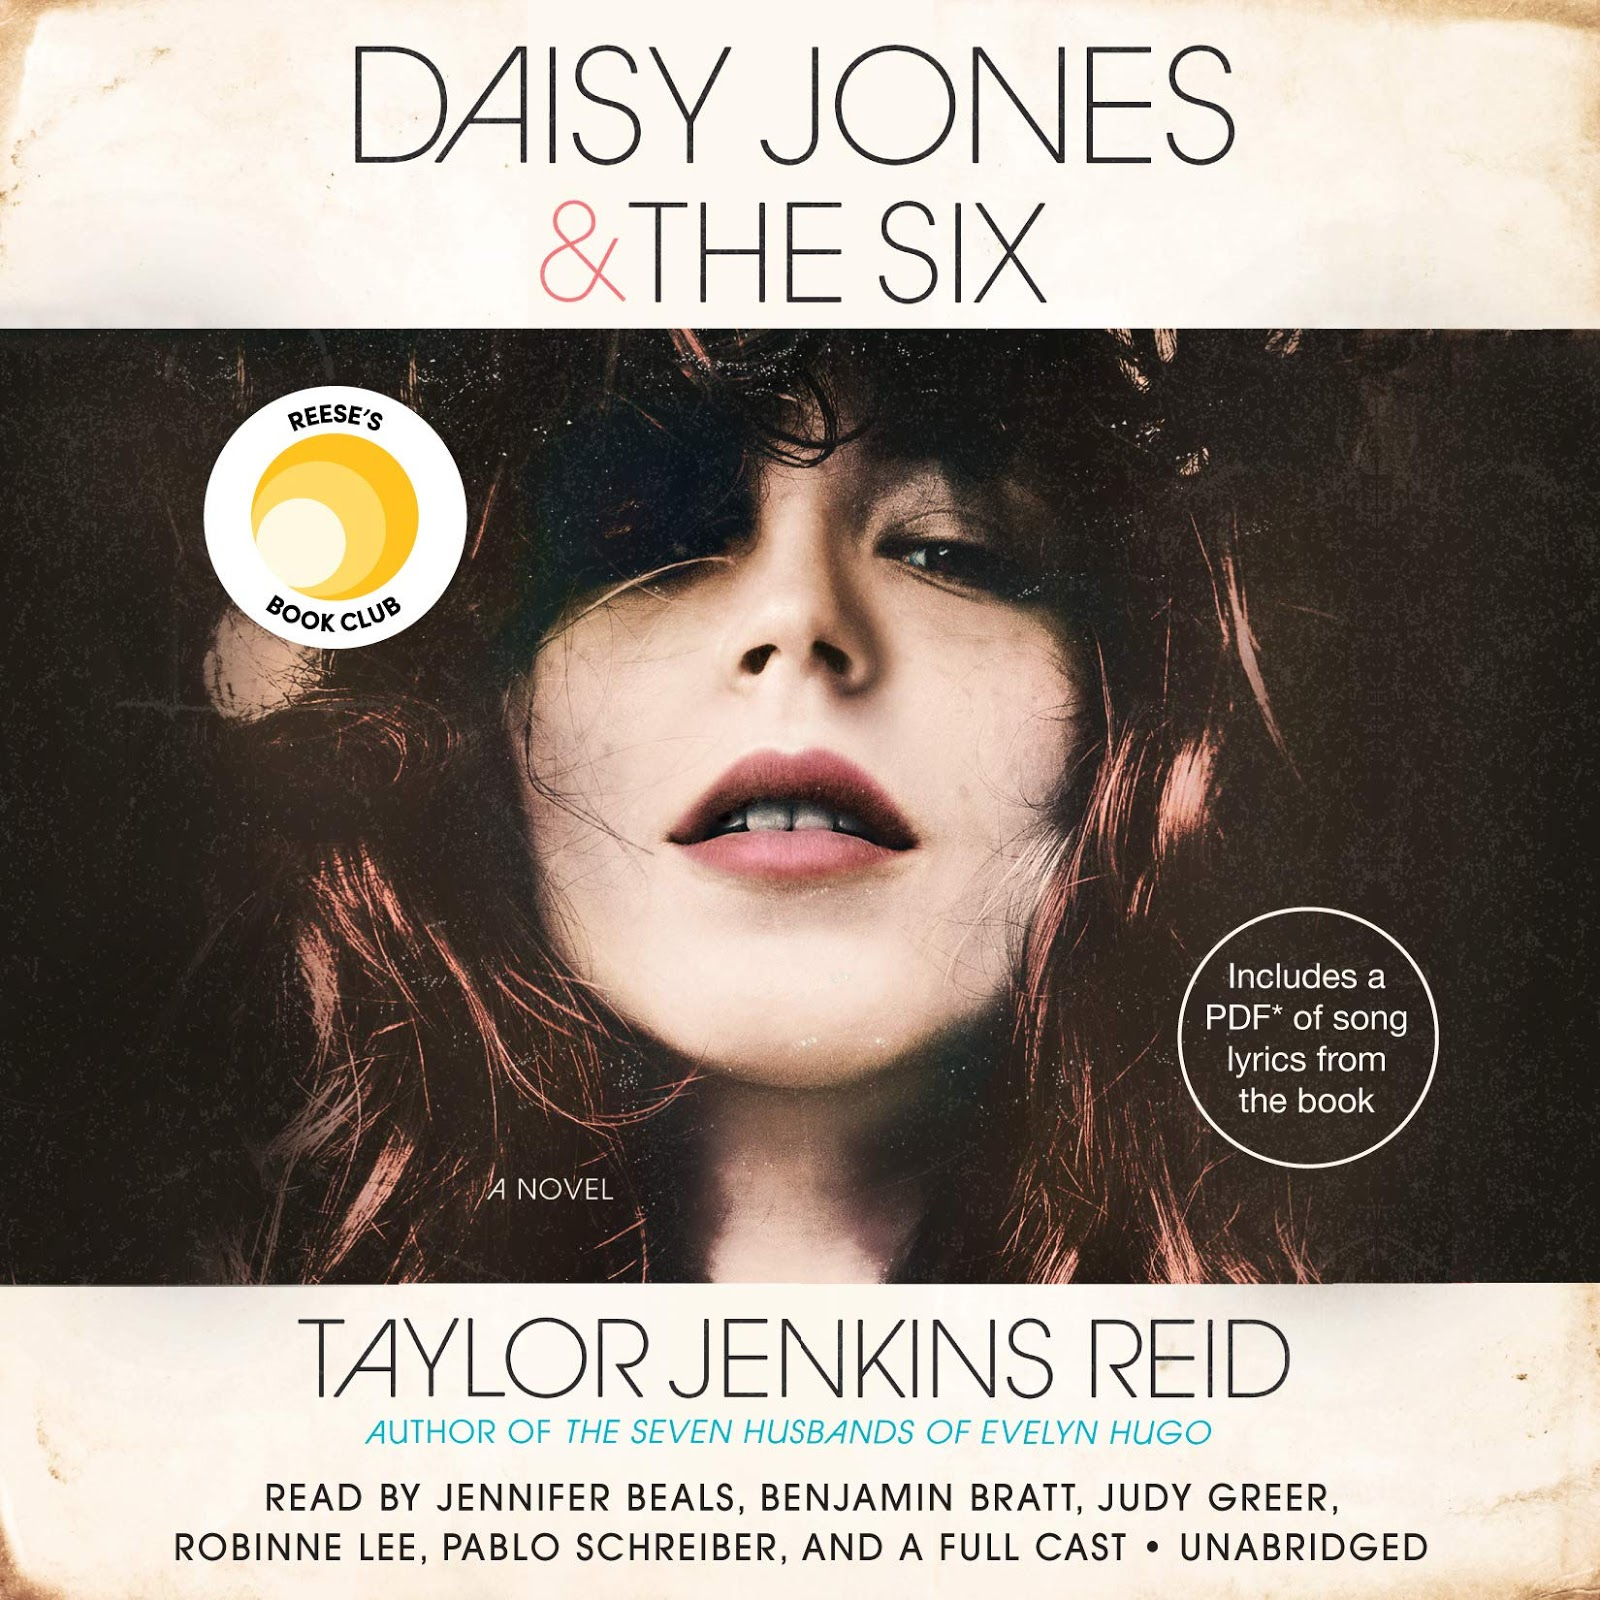 Daisy Jones & the Six review